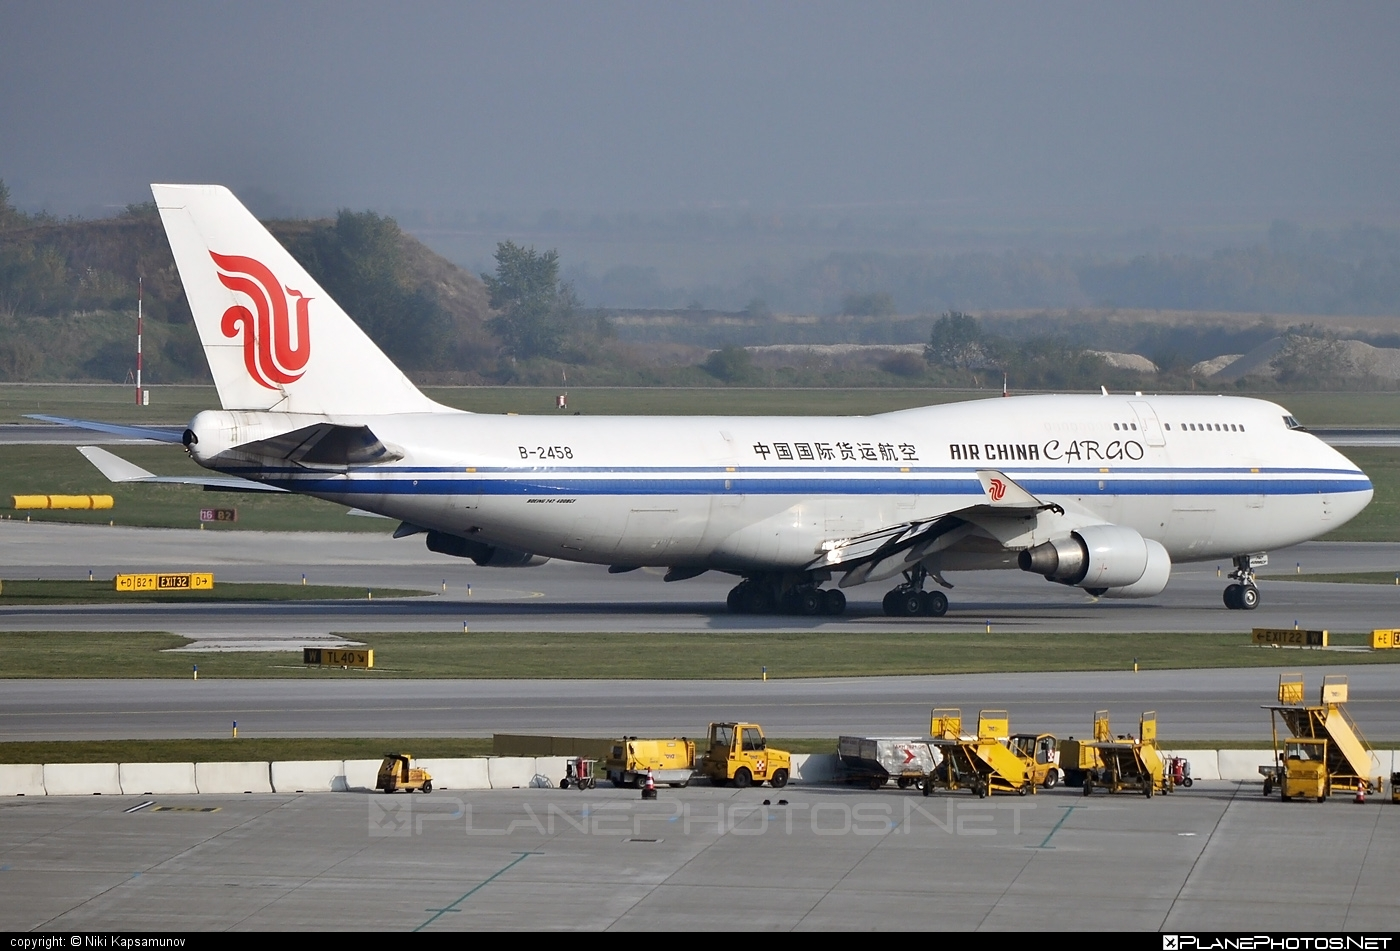 Boeing 747-400BCF - B-2458 operated by Air China Cargo #airchina #airchinacargo #b747 #b747bcf #boeing #boeing747 #boeingconvertedfreighter #jumbo